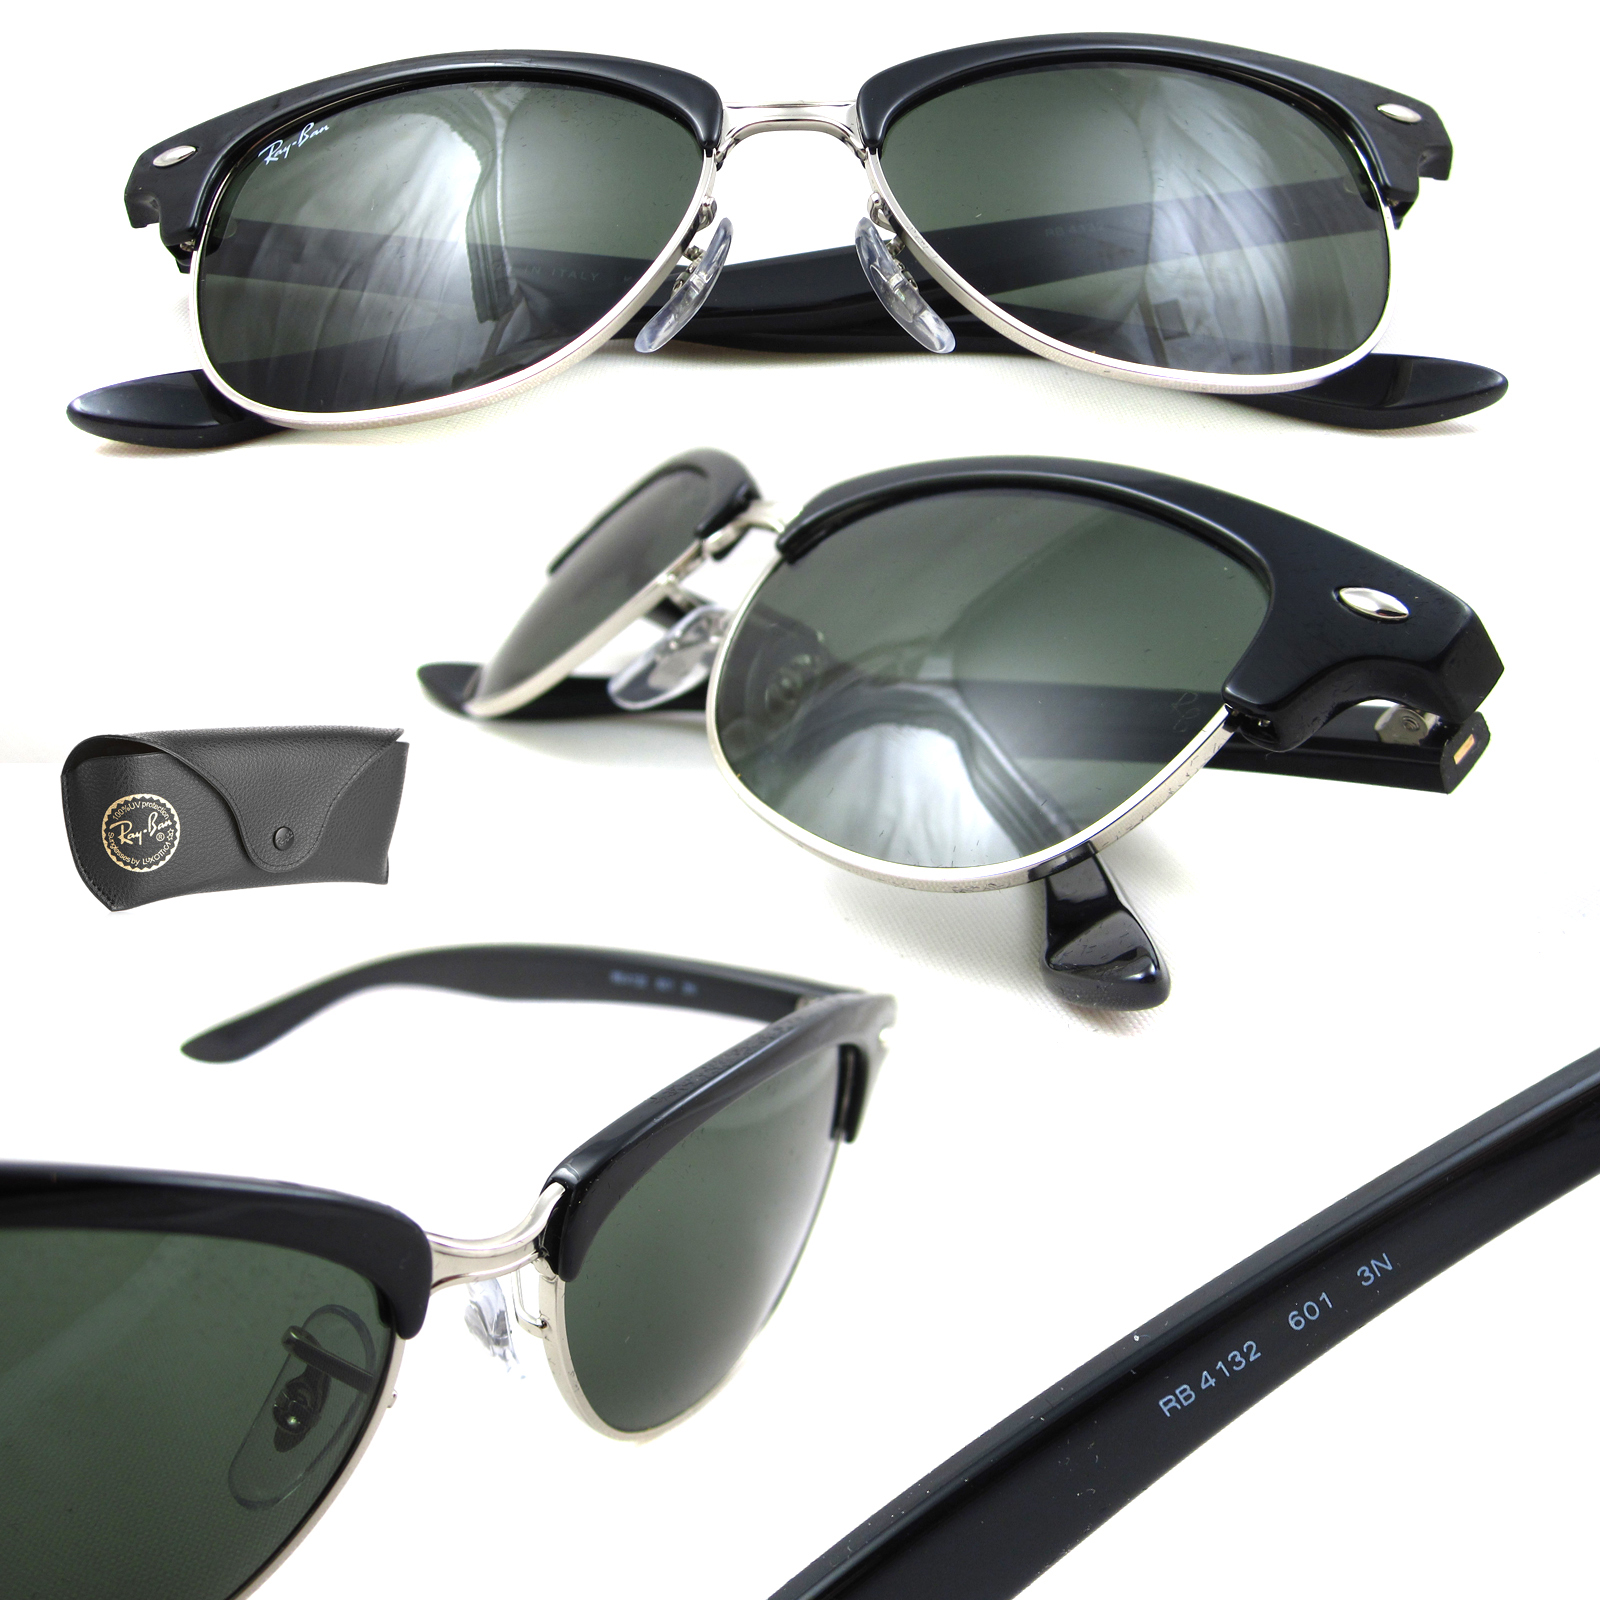 ray ban wayfarer sunglass hut uk